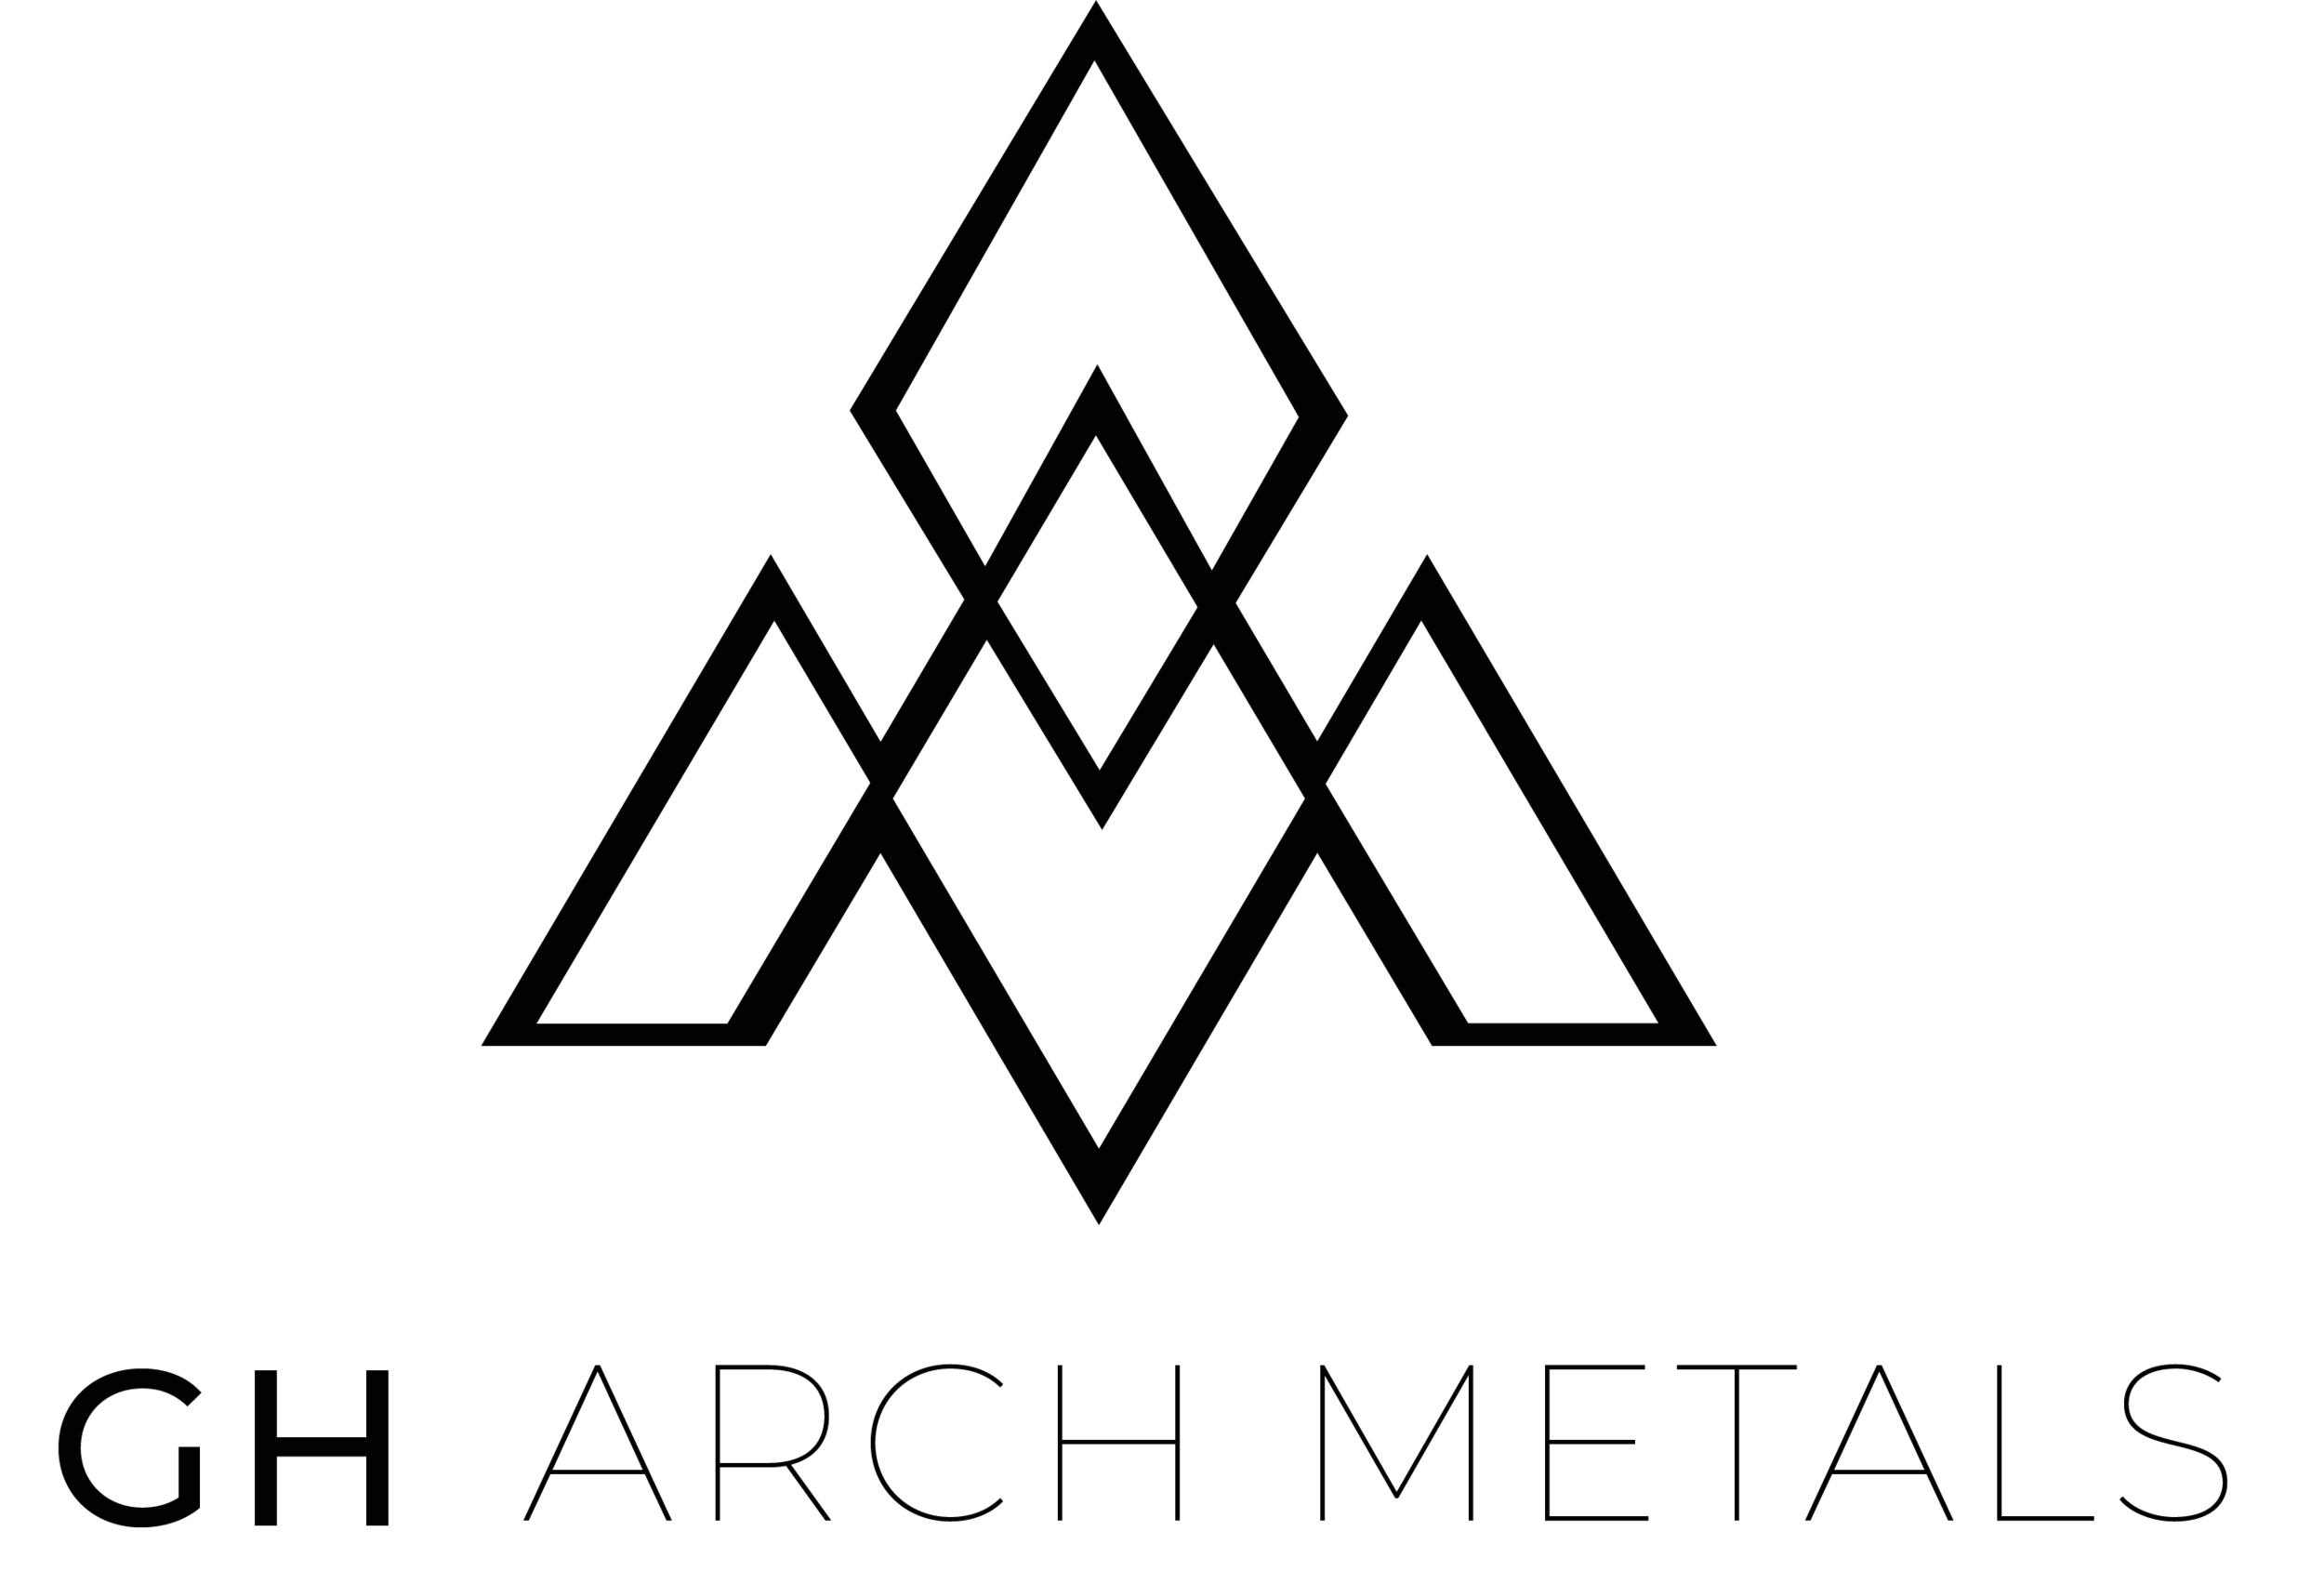 GH Arch Metals Logo Design By SERP Matrix